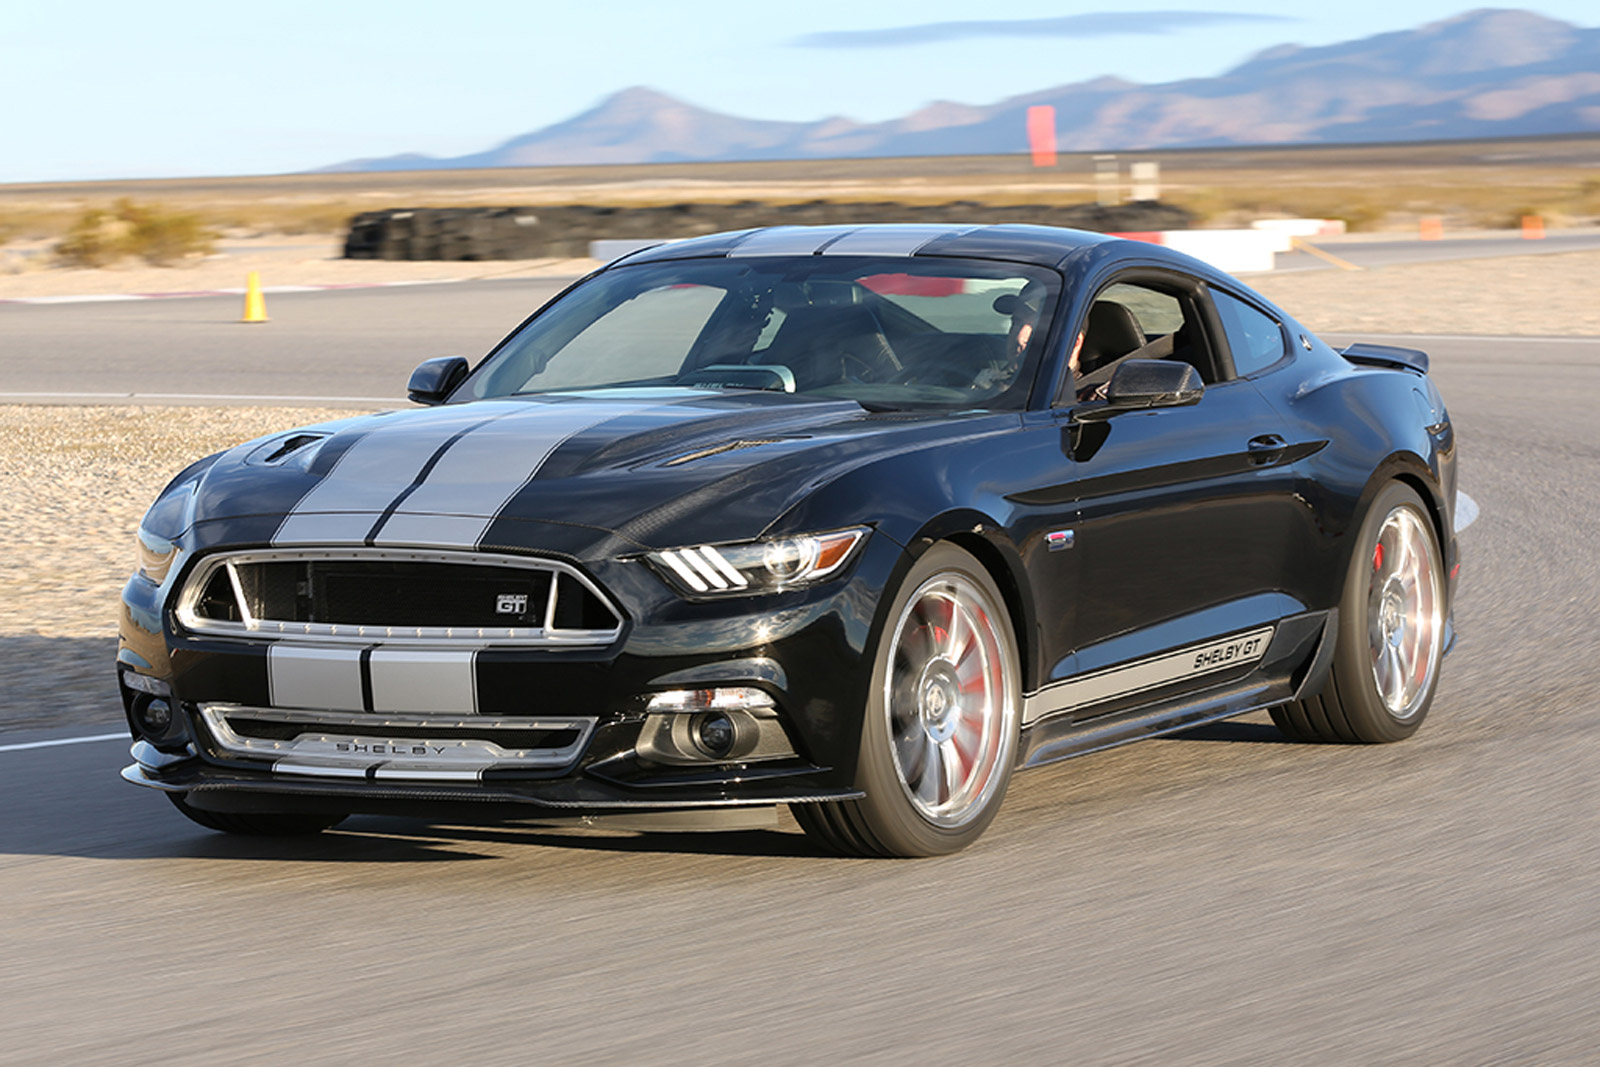 Durango Srt 2015 >> 2015 Ford Shelby GT Debuts With 625 Horsepower: Video